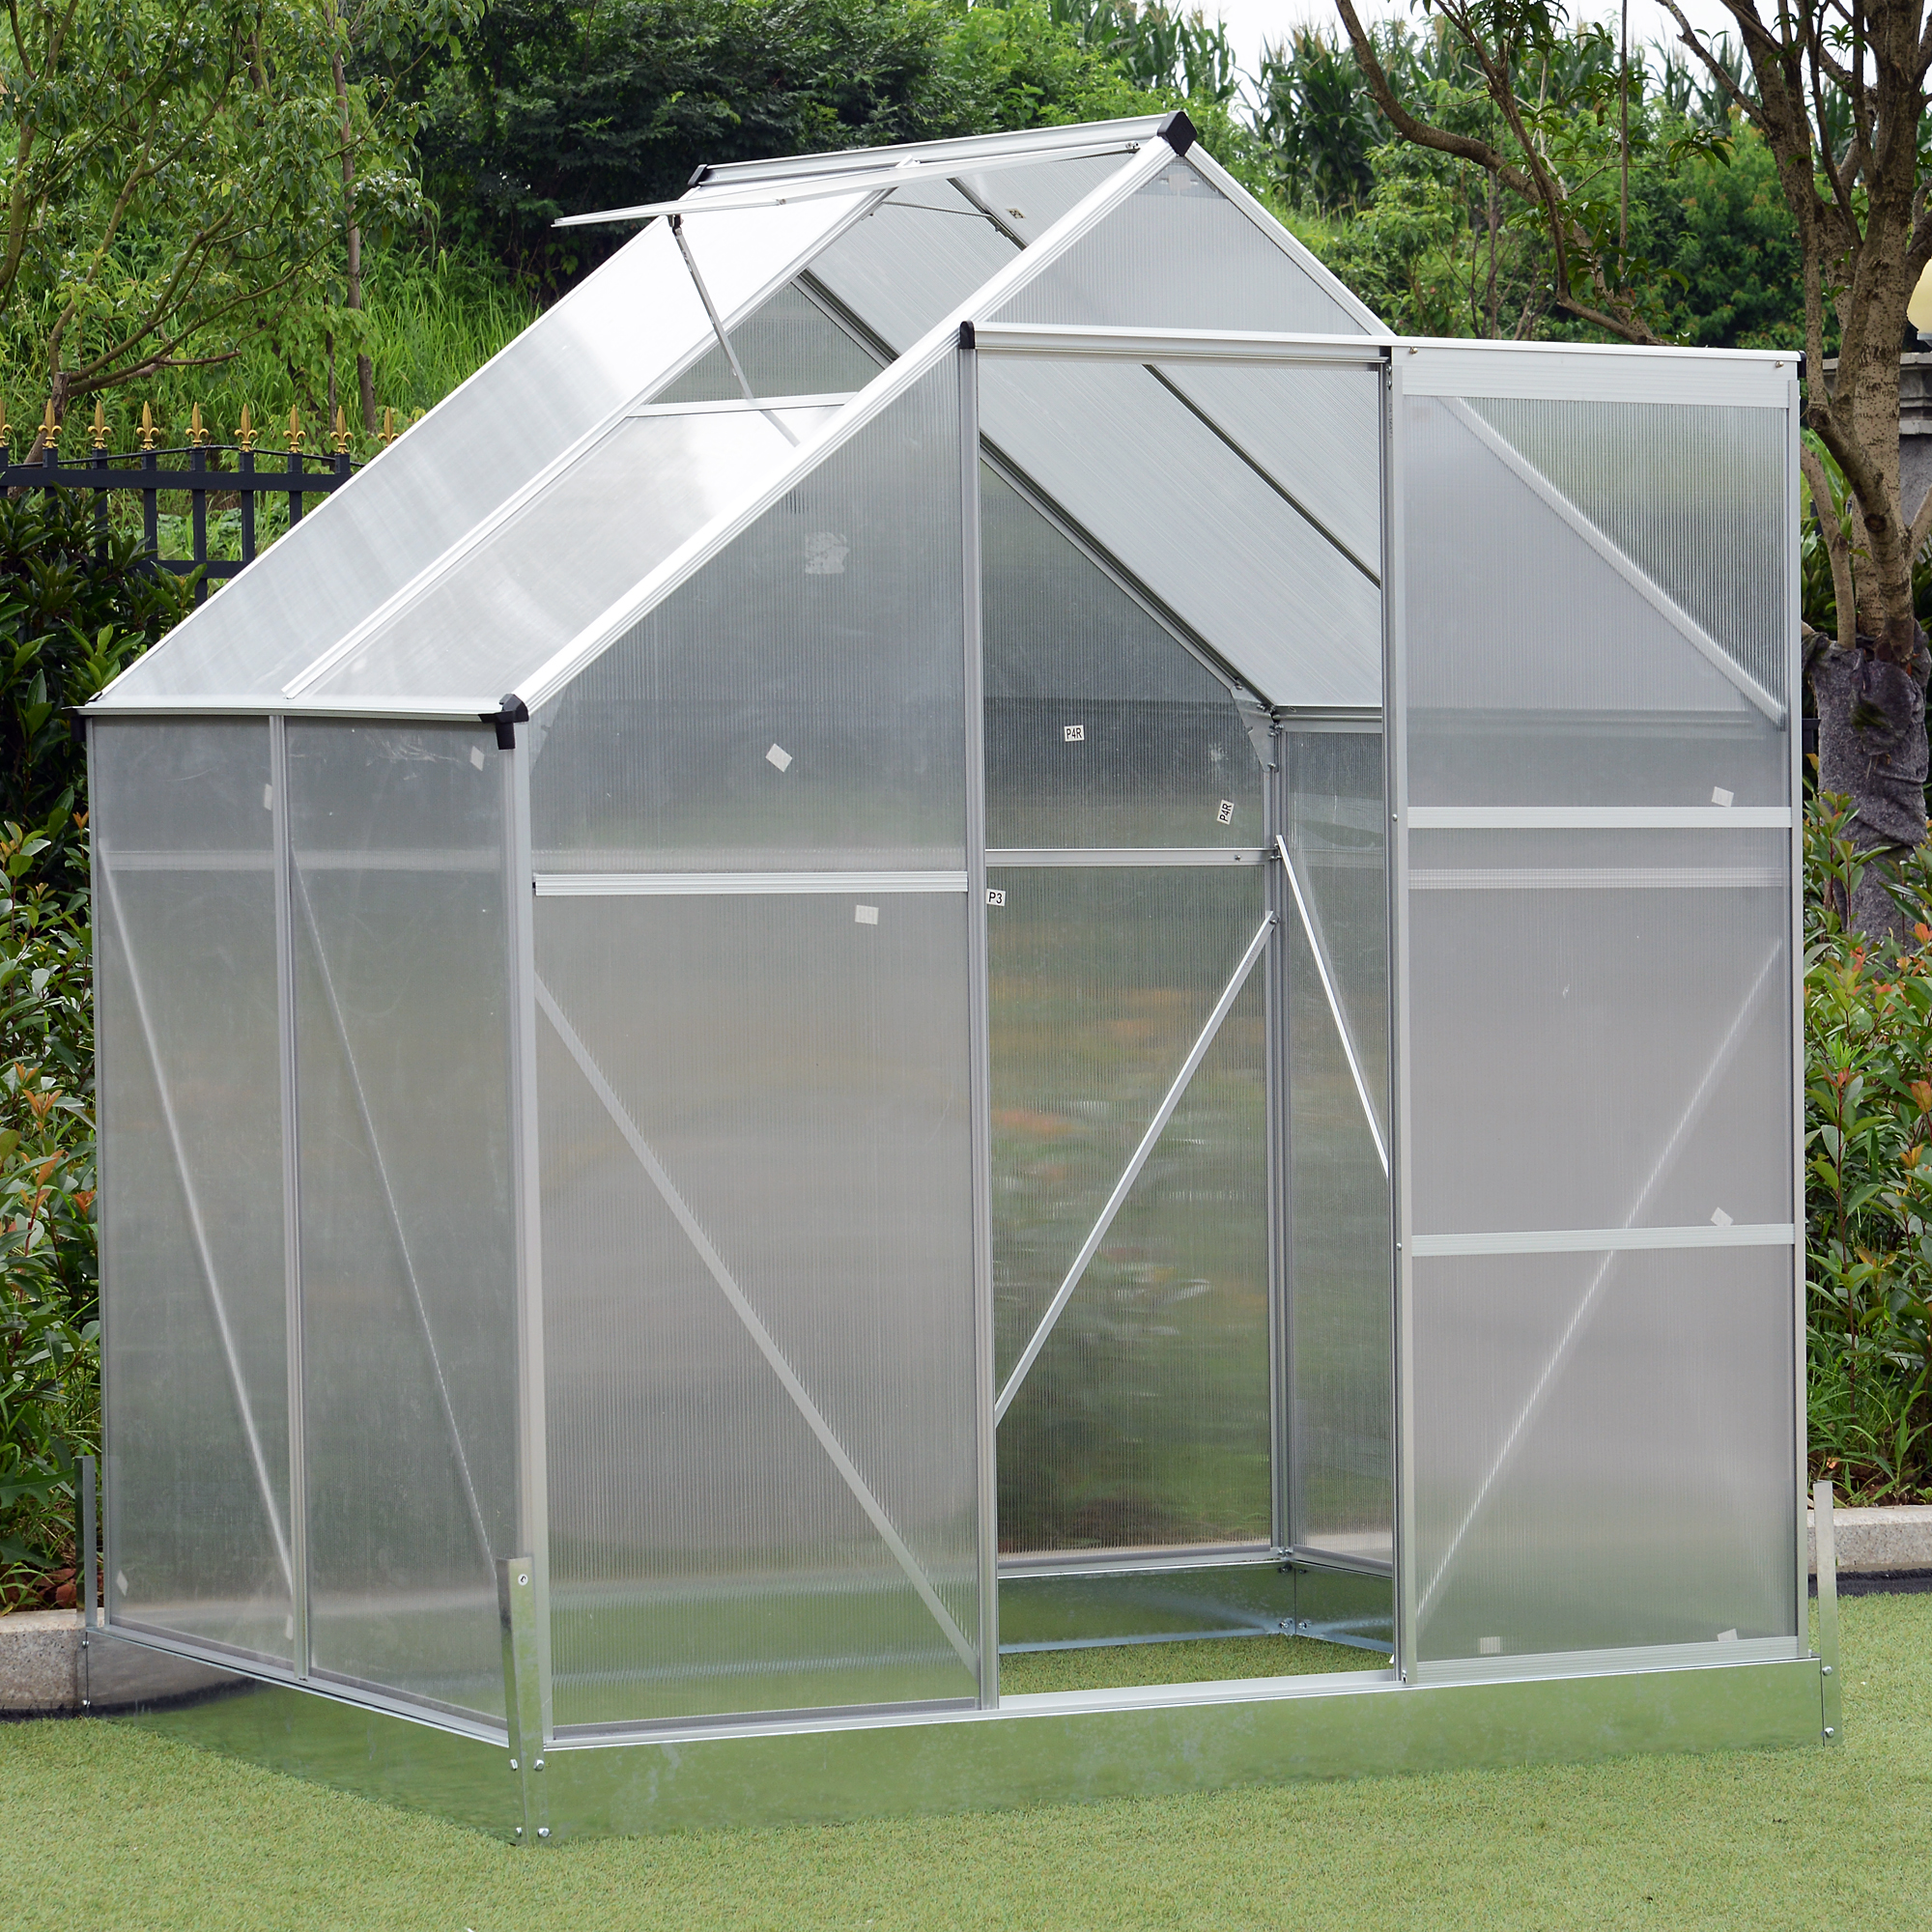 Details about Outsunny 4 25' Outdoor Aluminum Polycarbonate Portable  Walk-In Greenhouse